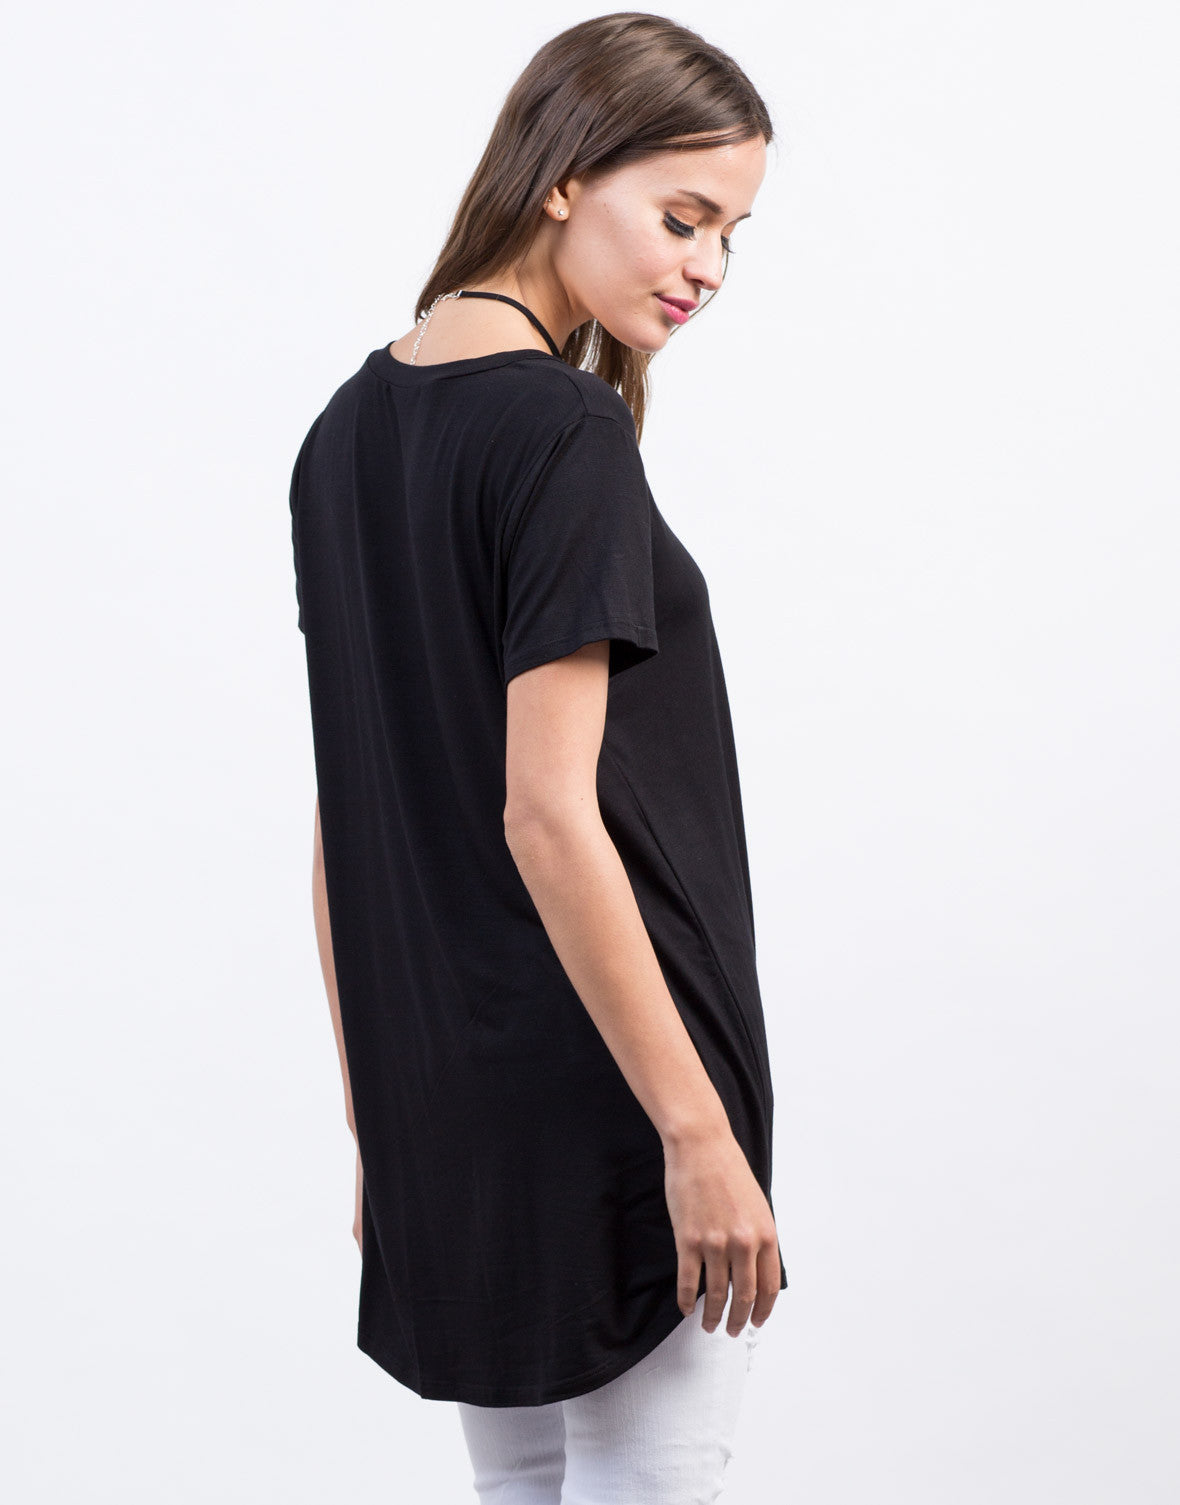 Back View of Basic T-Shirt Tunic Top